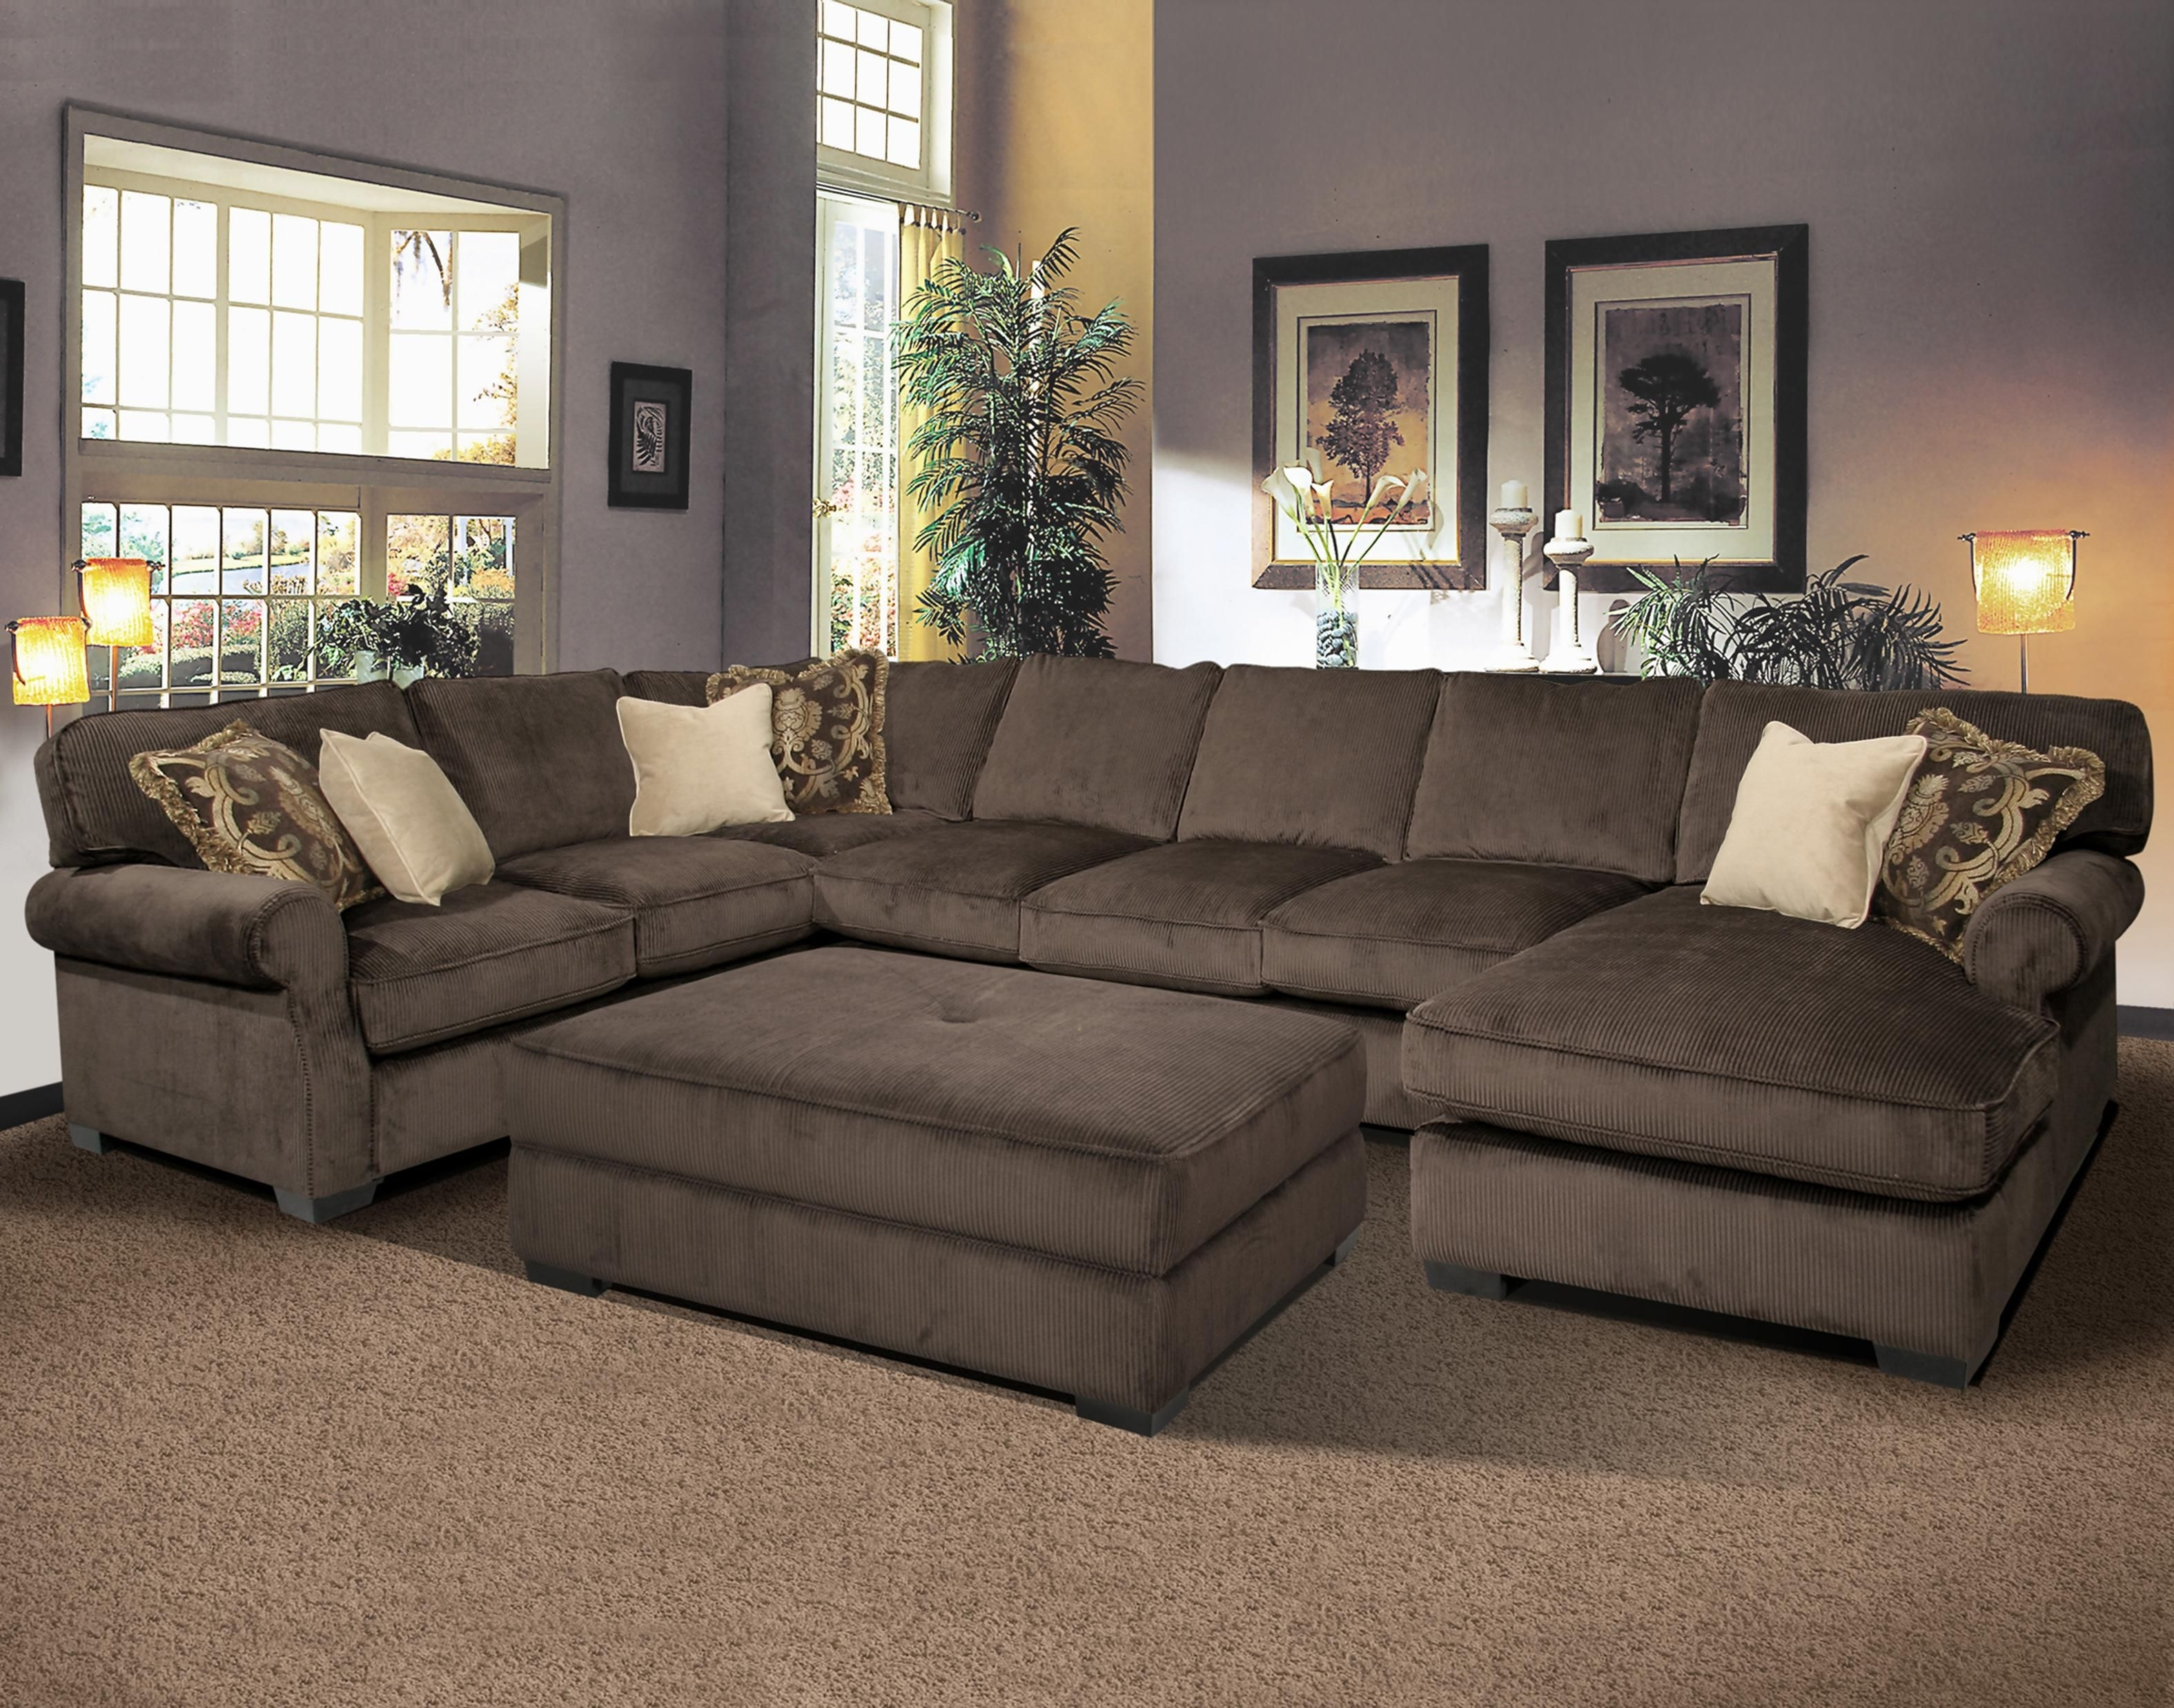 Big And Comfy Grand Island Large, 7 Seat Sectional Sofa With Right Throughout Long Sectional Sofas With Chaise (Image 3 of 10)